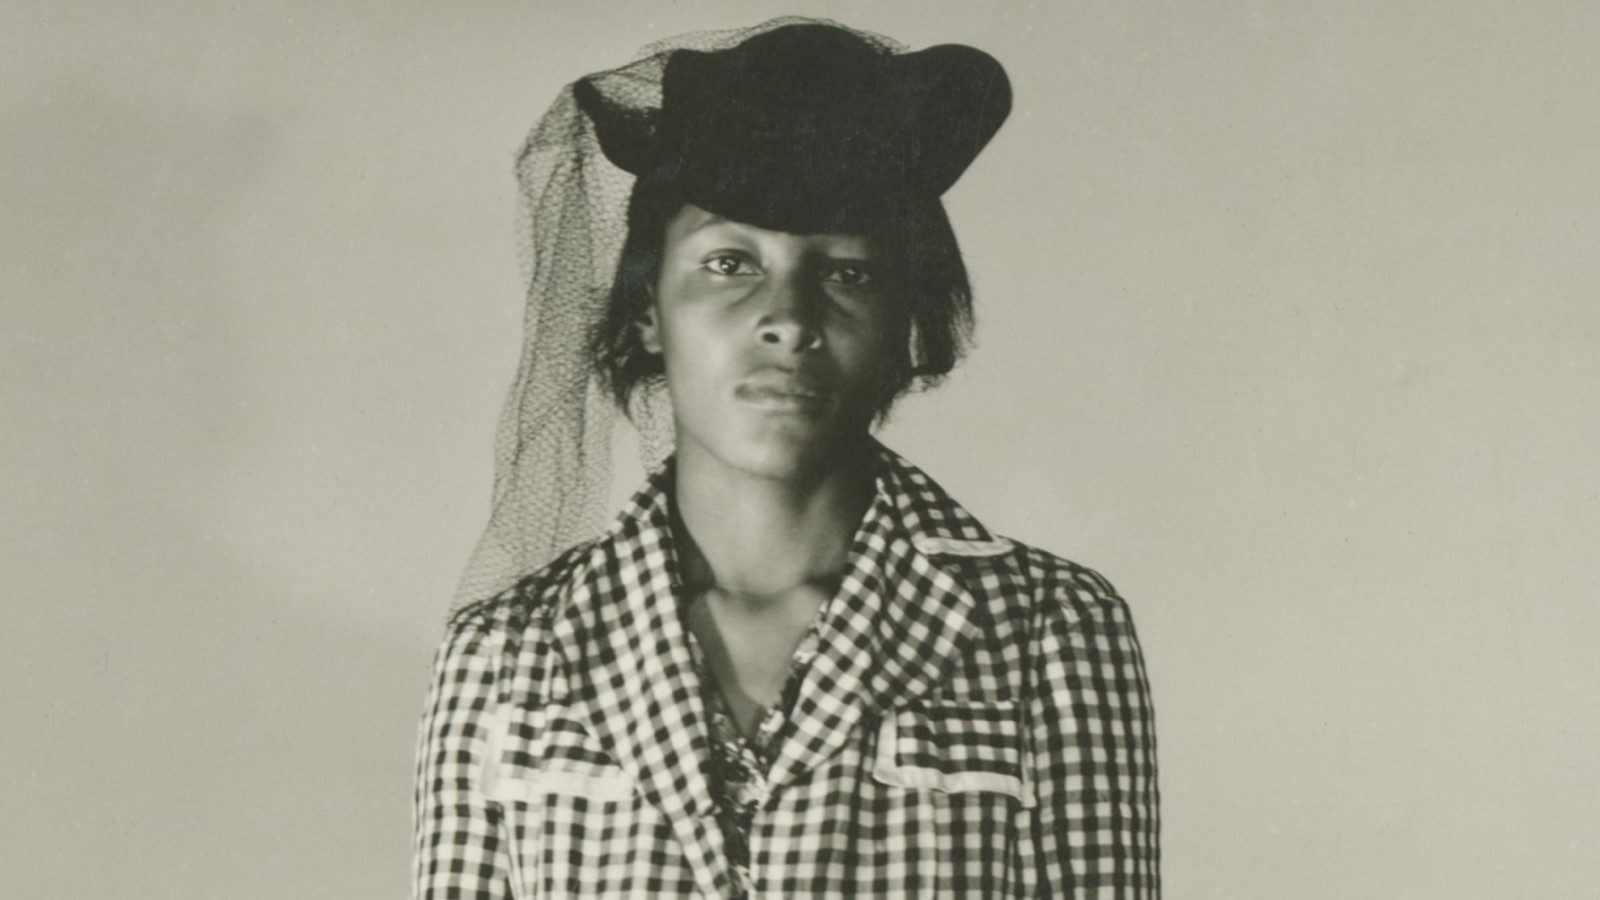 Recy Taylor in a photograph from 'The Rape of Recy Taylor' | © Augusta Films